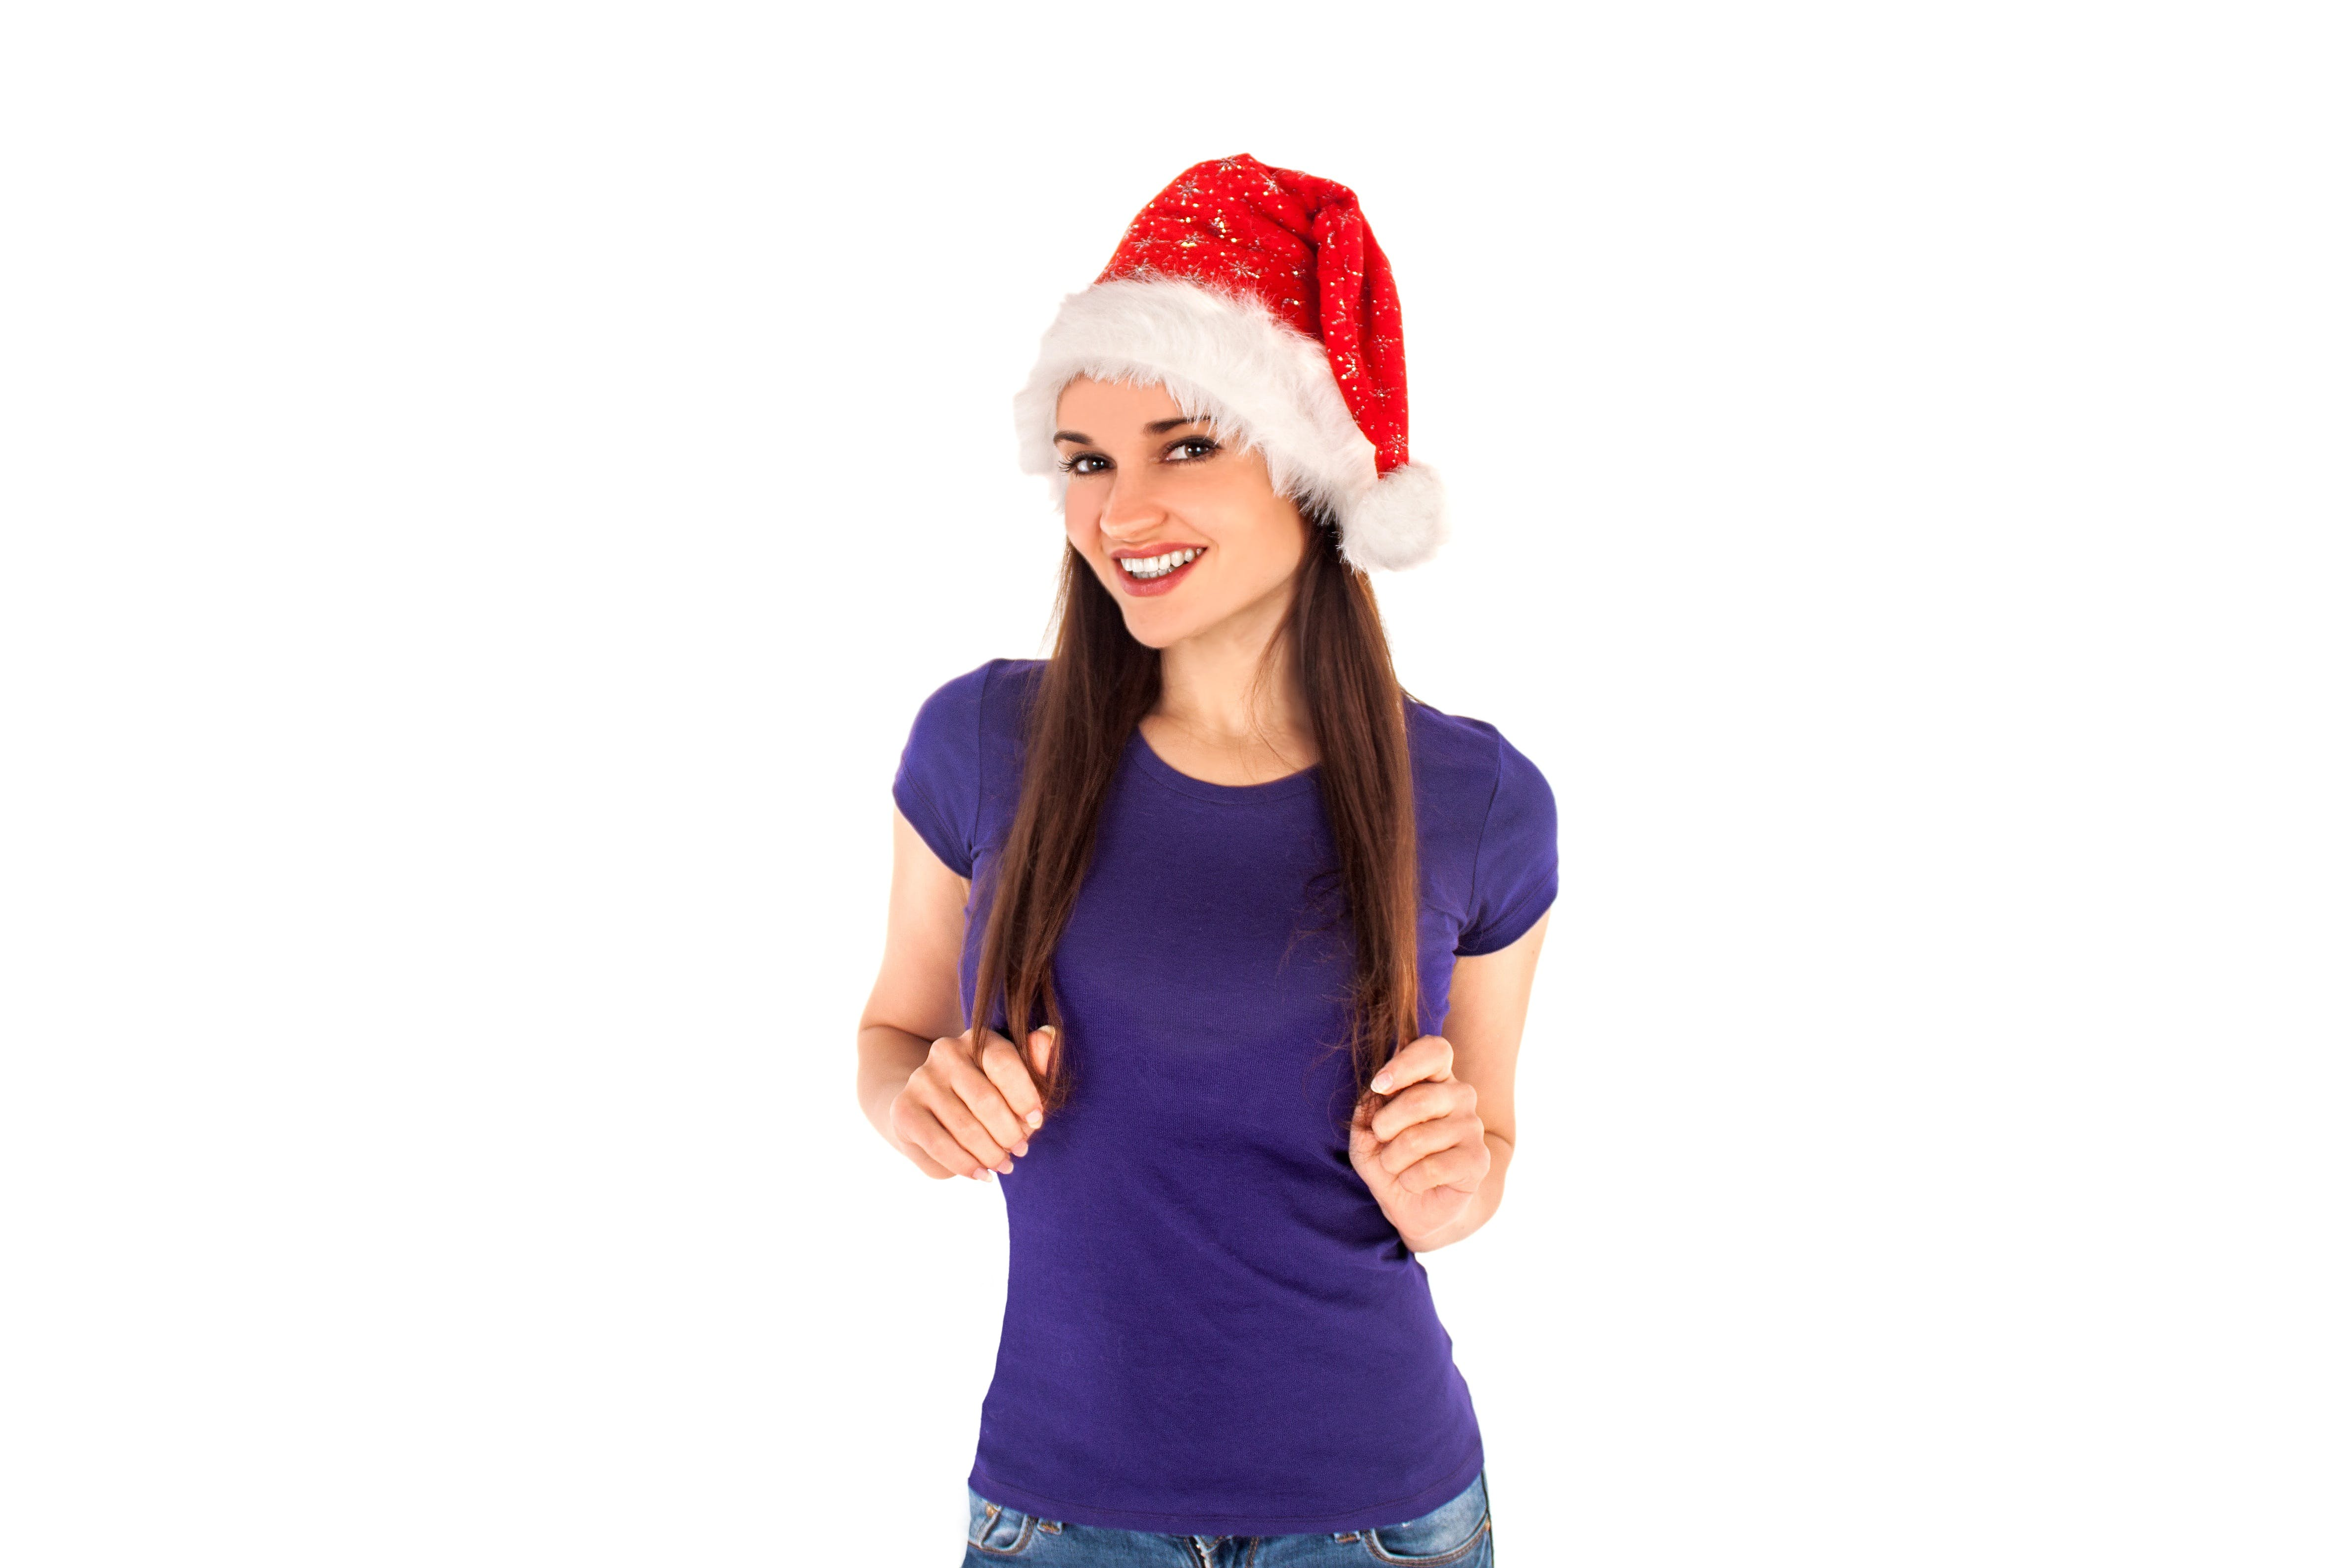 Free stock photo of holiday, people, woman, girl